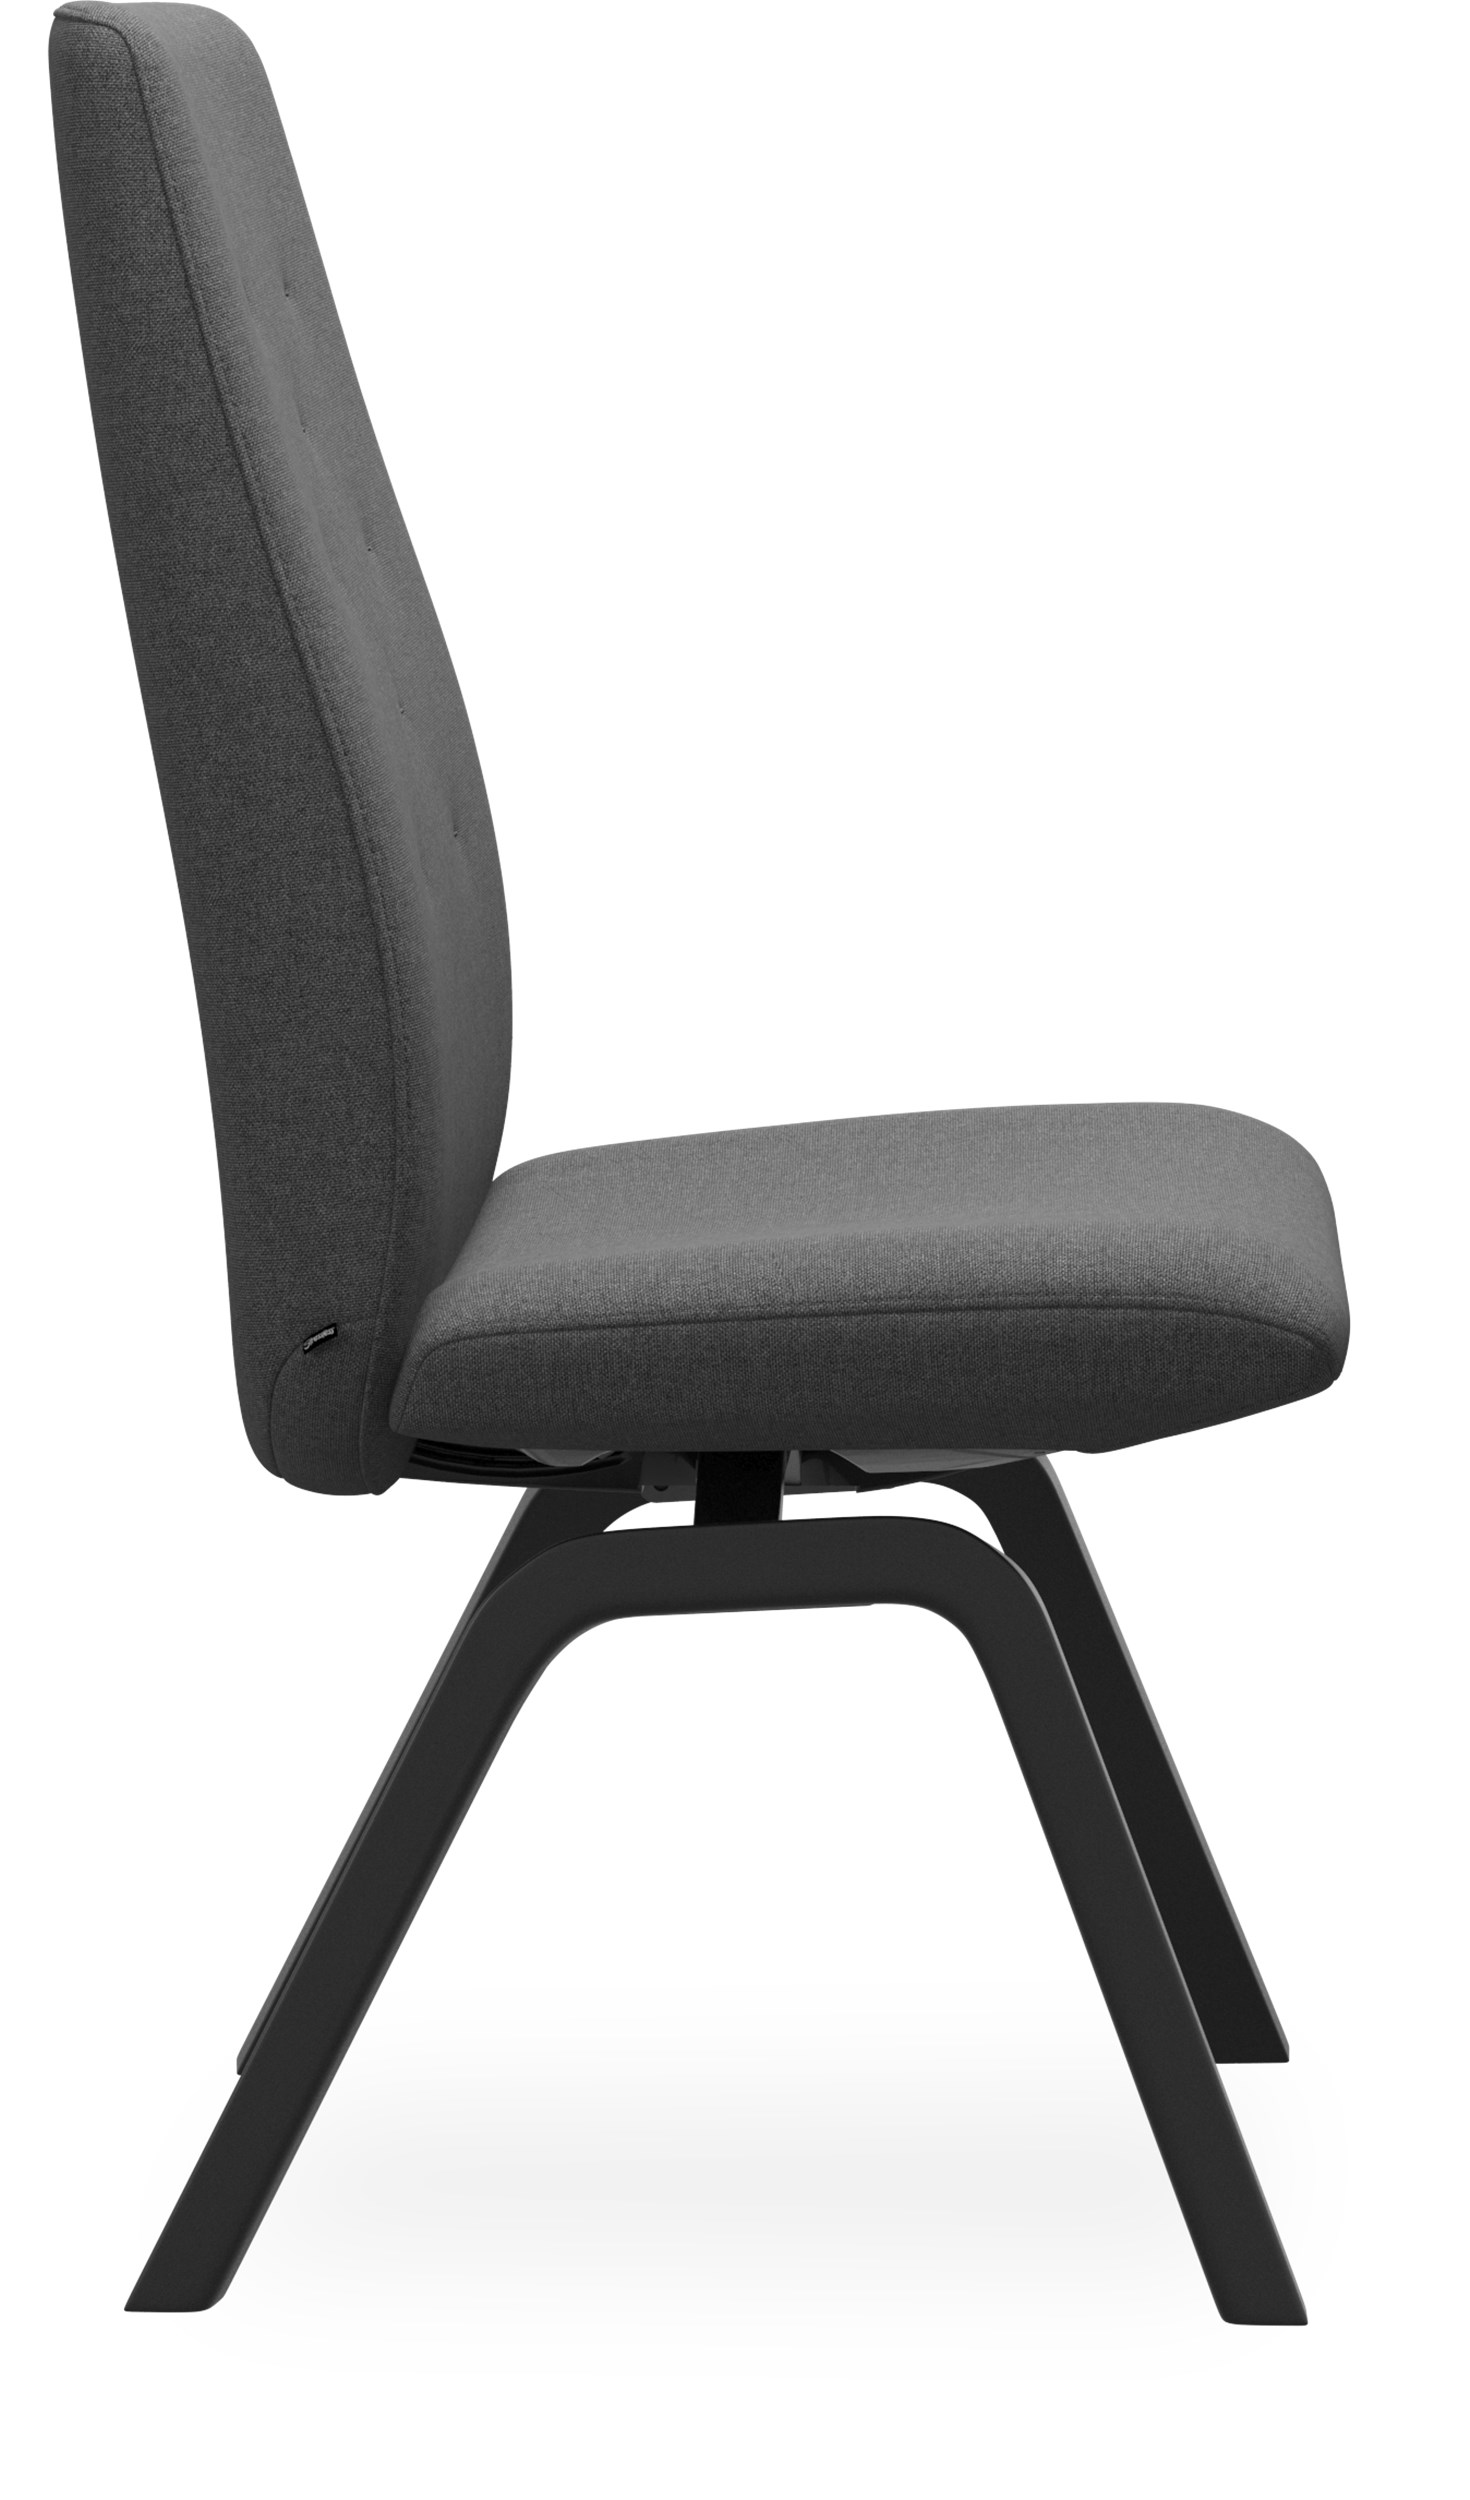 Stressless L D200 Rosemary high Spisebordsstol